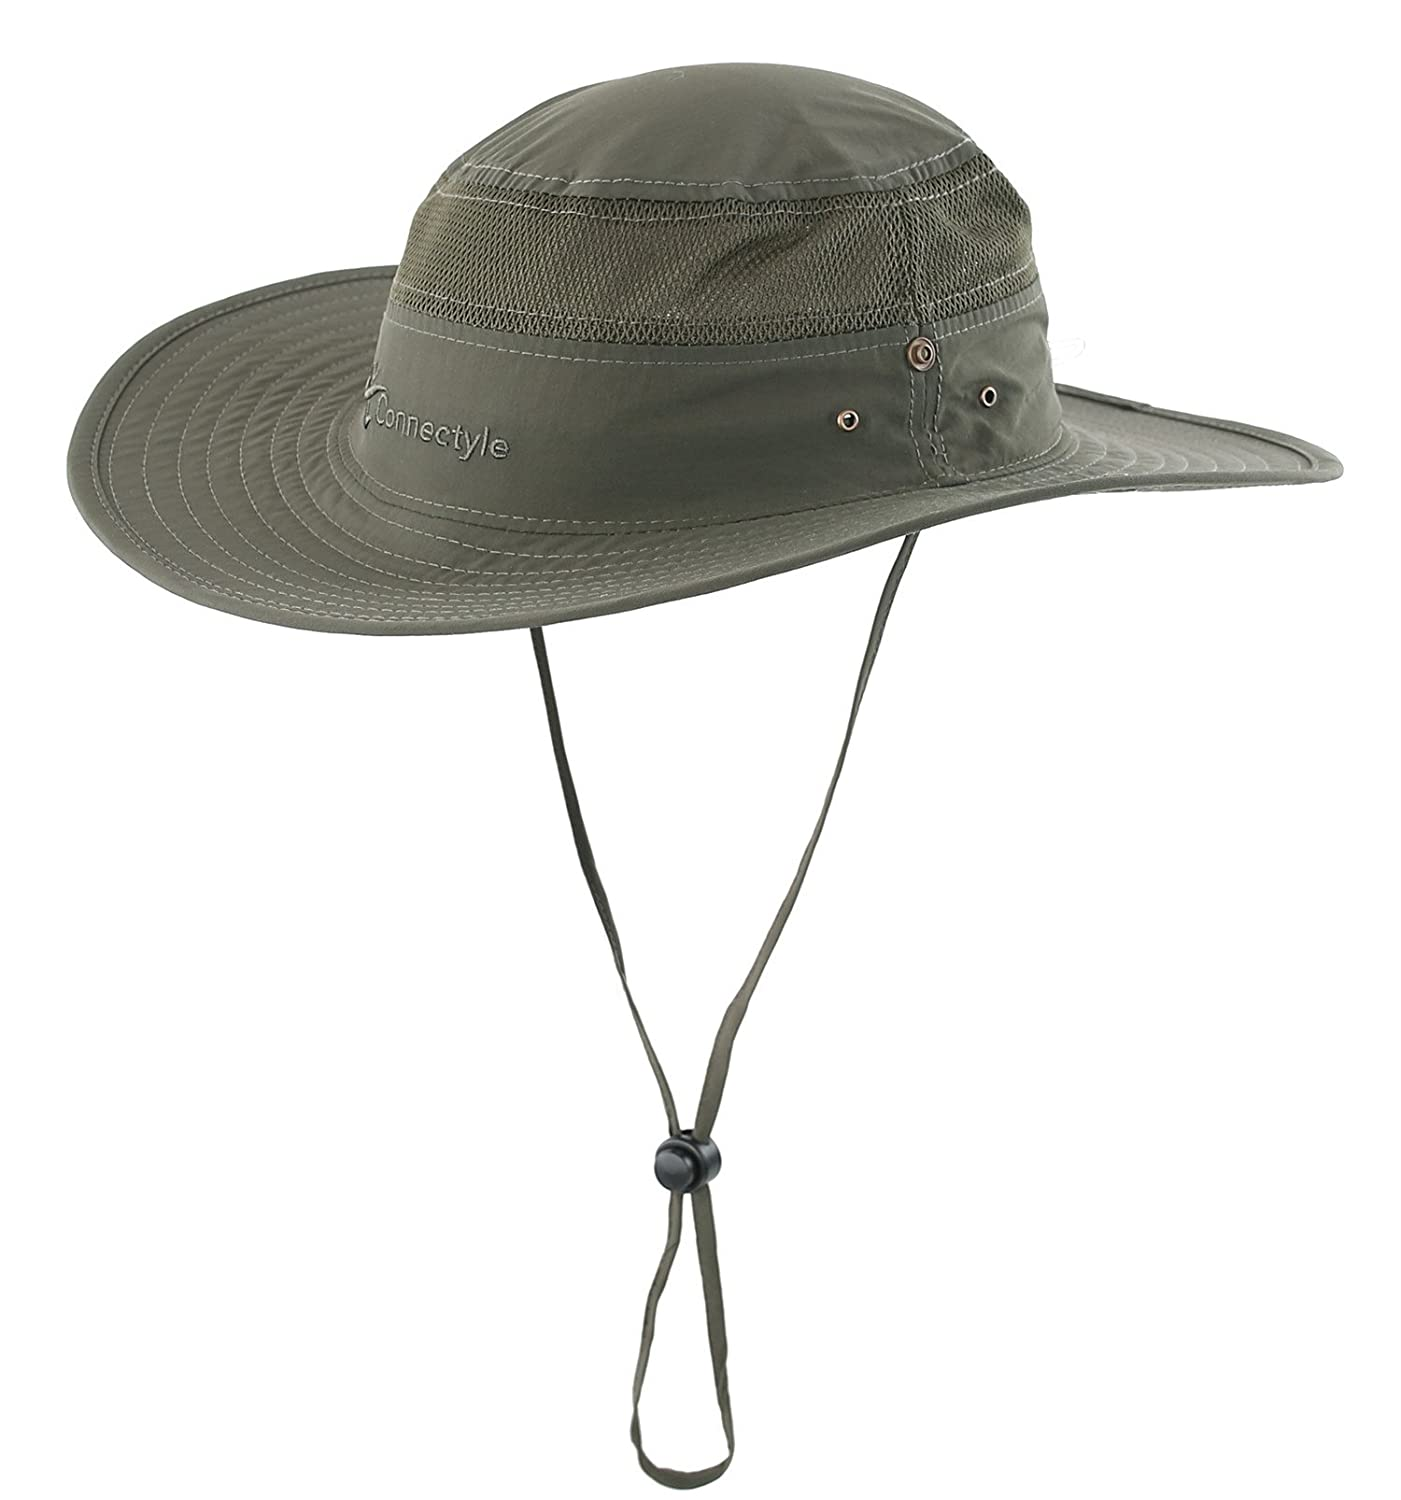 47d11a424476e Amazon.com  Connectyle Outdoor Mesh Sun Hat Wide Brim Sun Protection Hat  Summer Fishing Hunting Hiking Gardenig Hat Army Green  Clothing